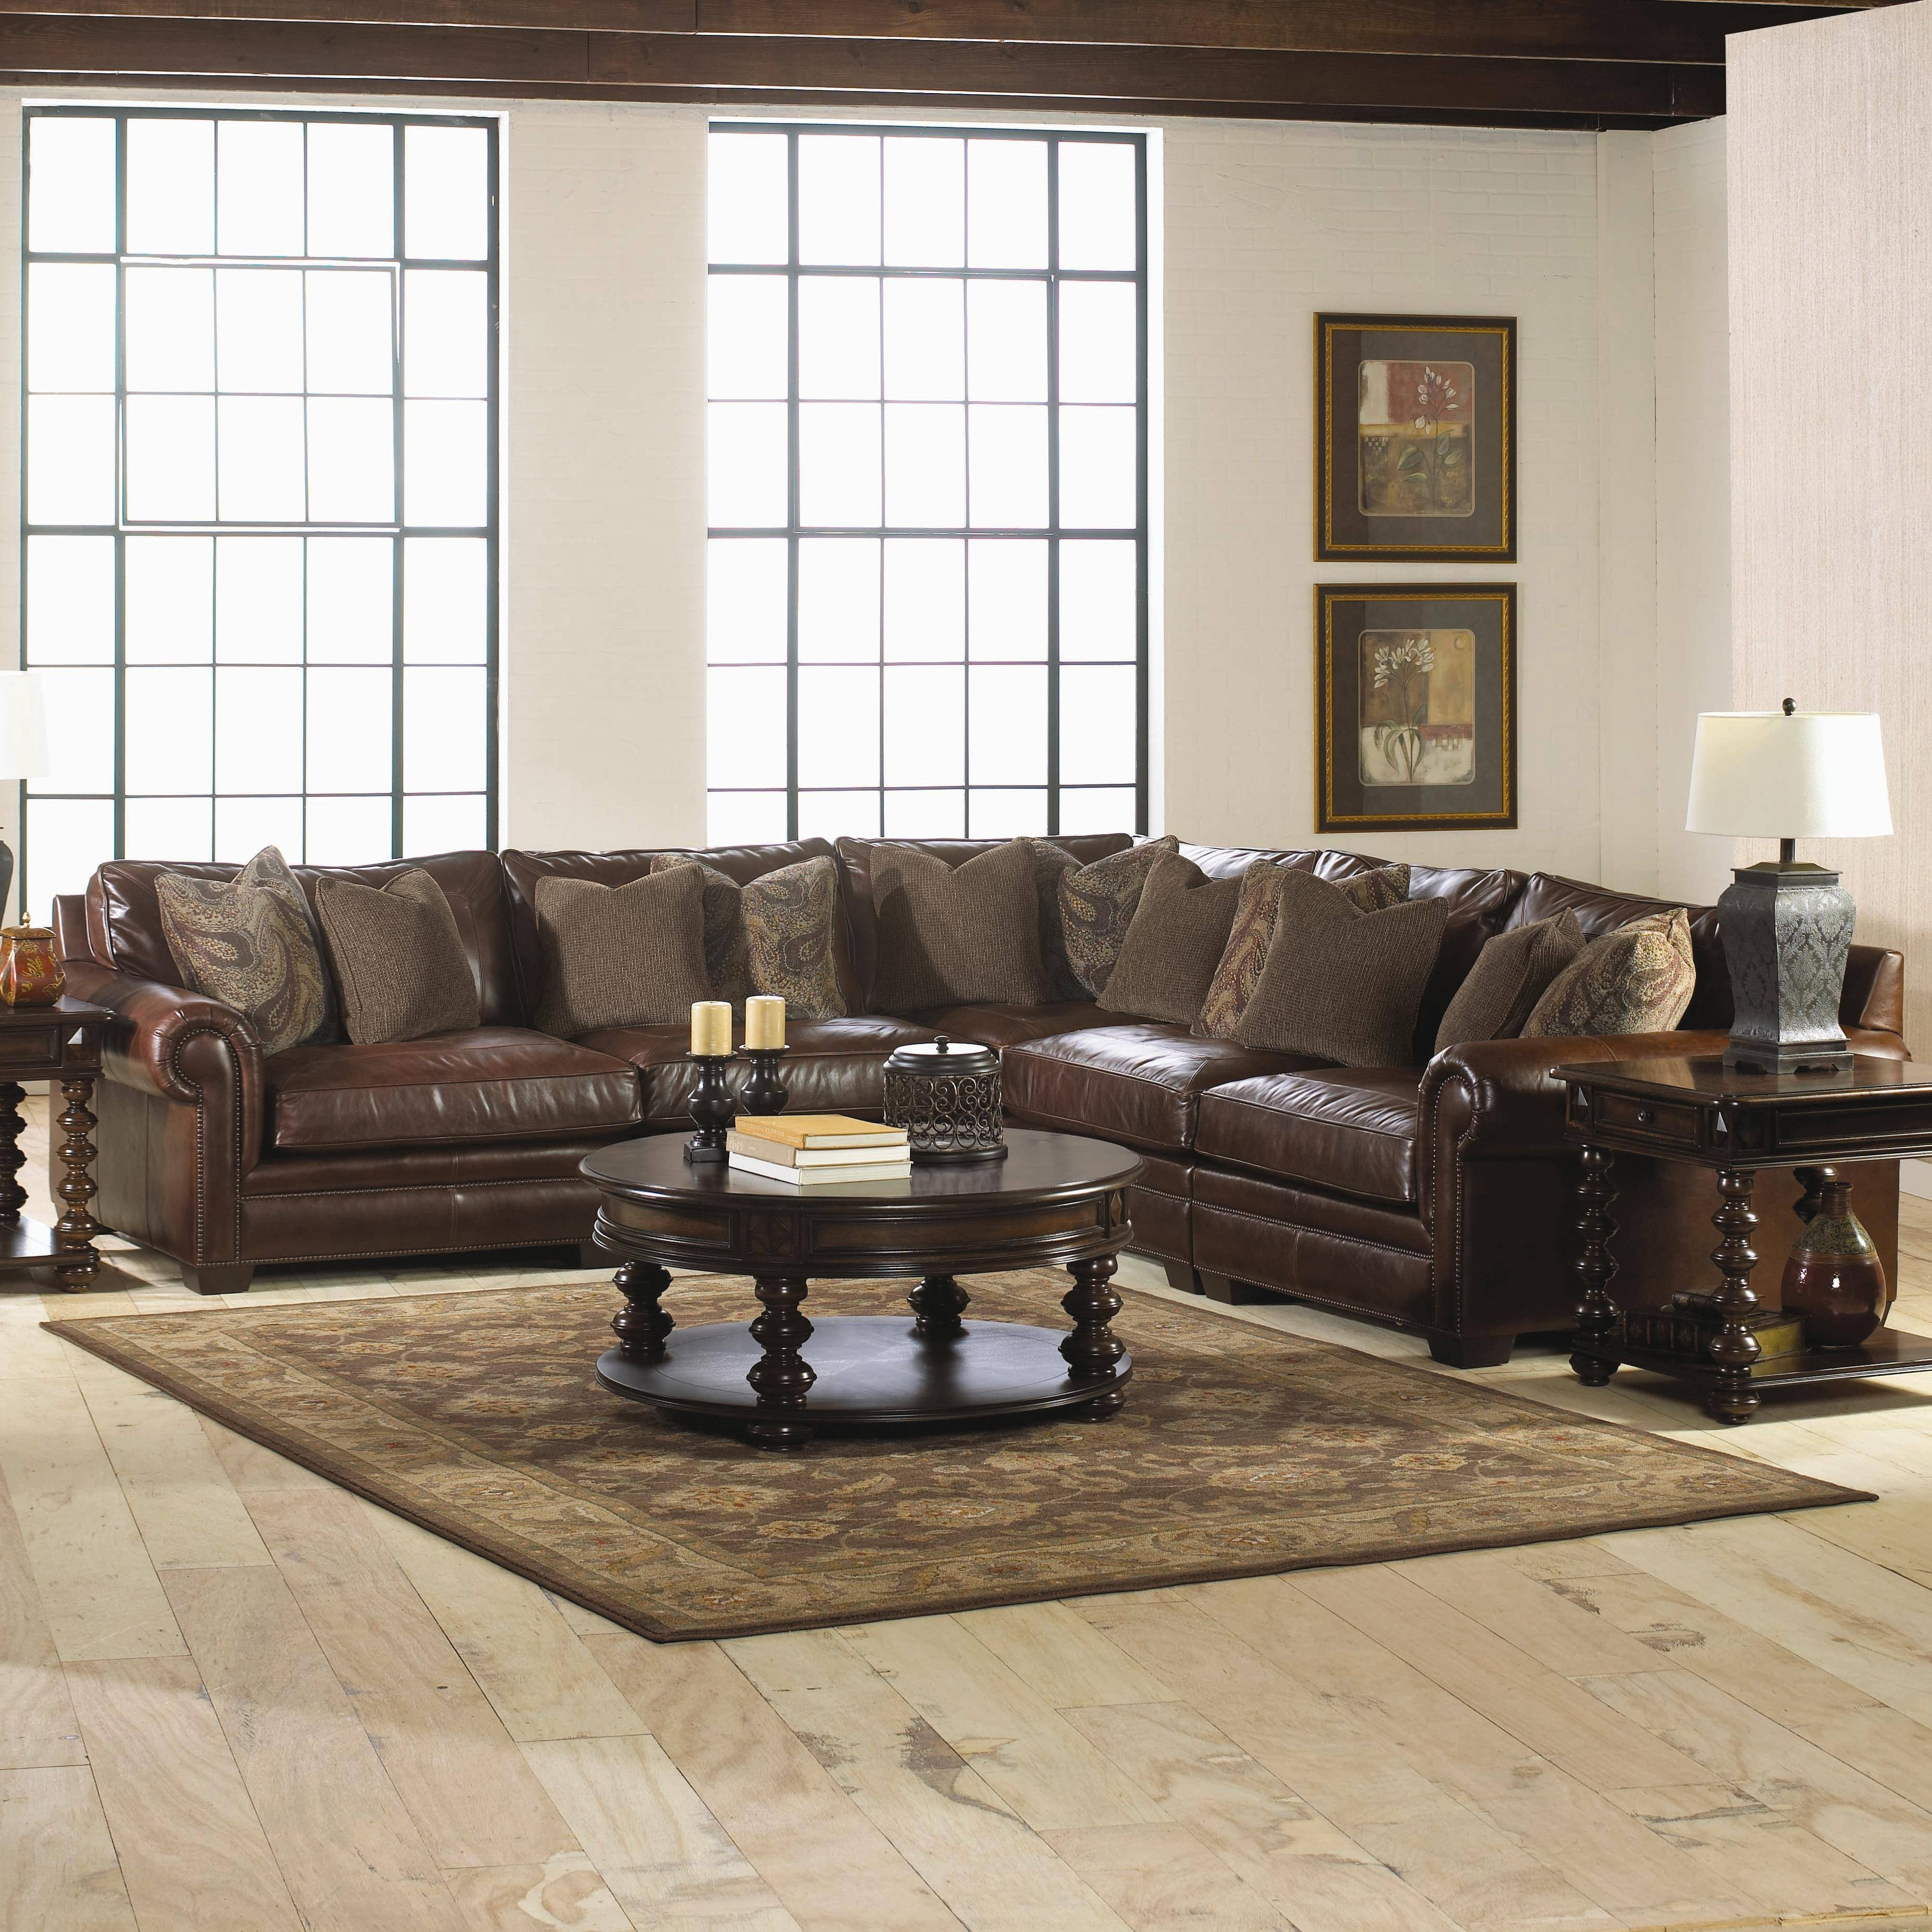 Cozy Sectional Sofas Havertys 21 For Abbyson Living Charlotte pertaining to Abbyson Living Charlotte Beige Sectional Sofa and Ottoman (Image 13 of 30)